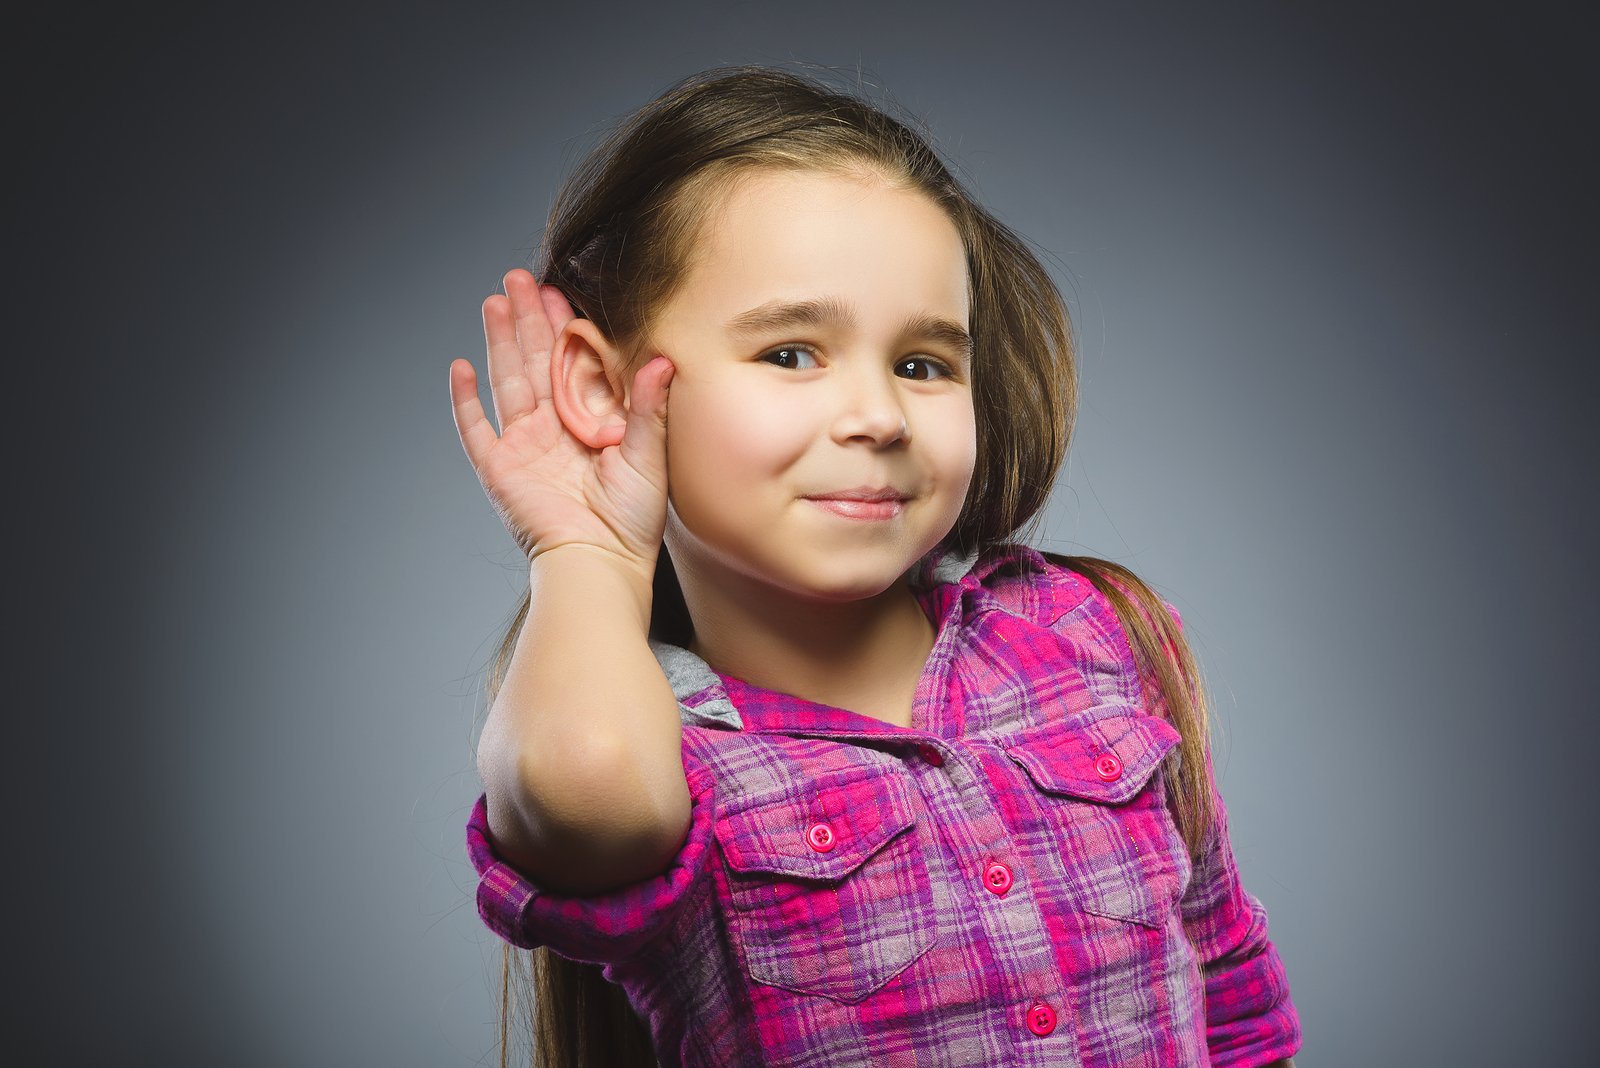 LIttle girl cupping her hand behind her ear to hear better.